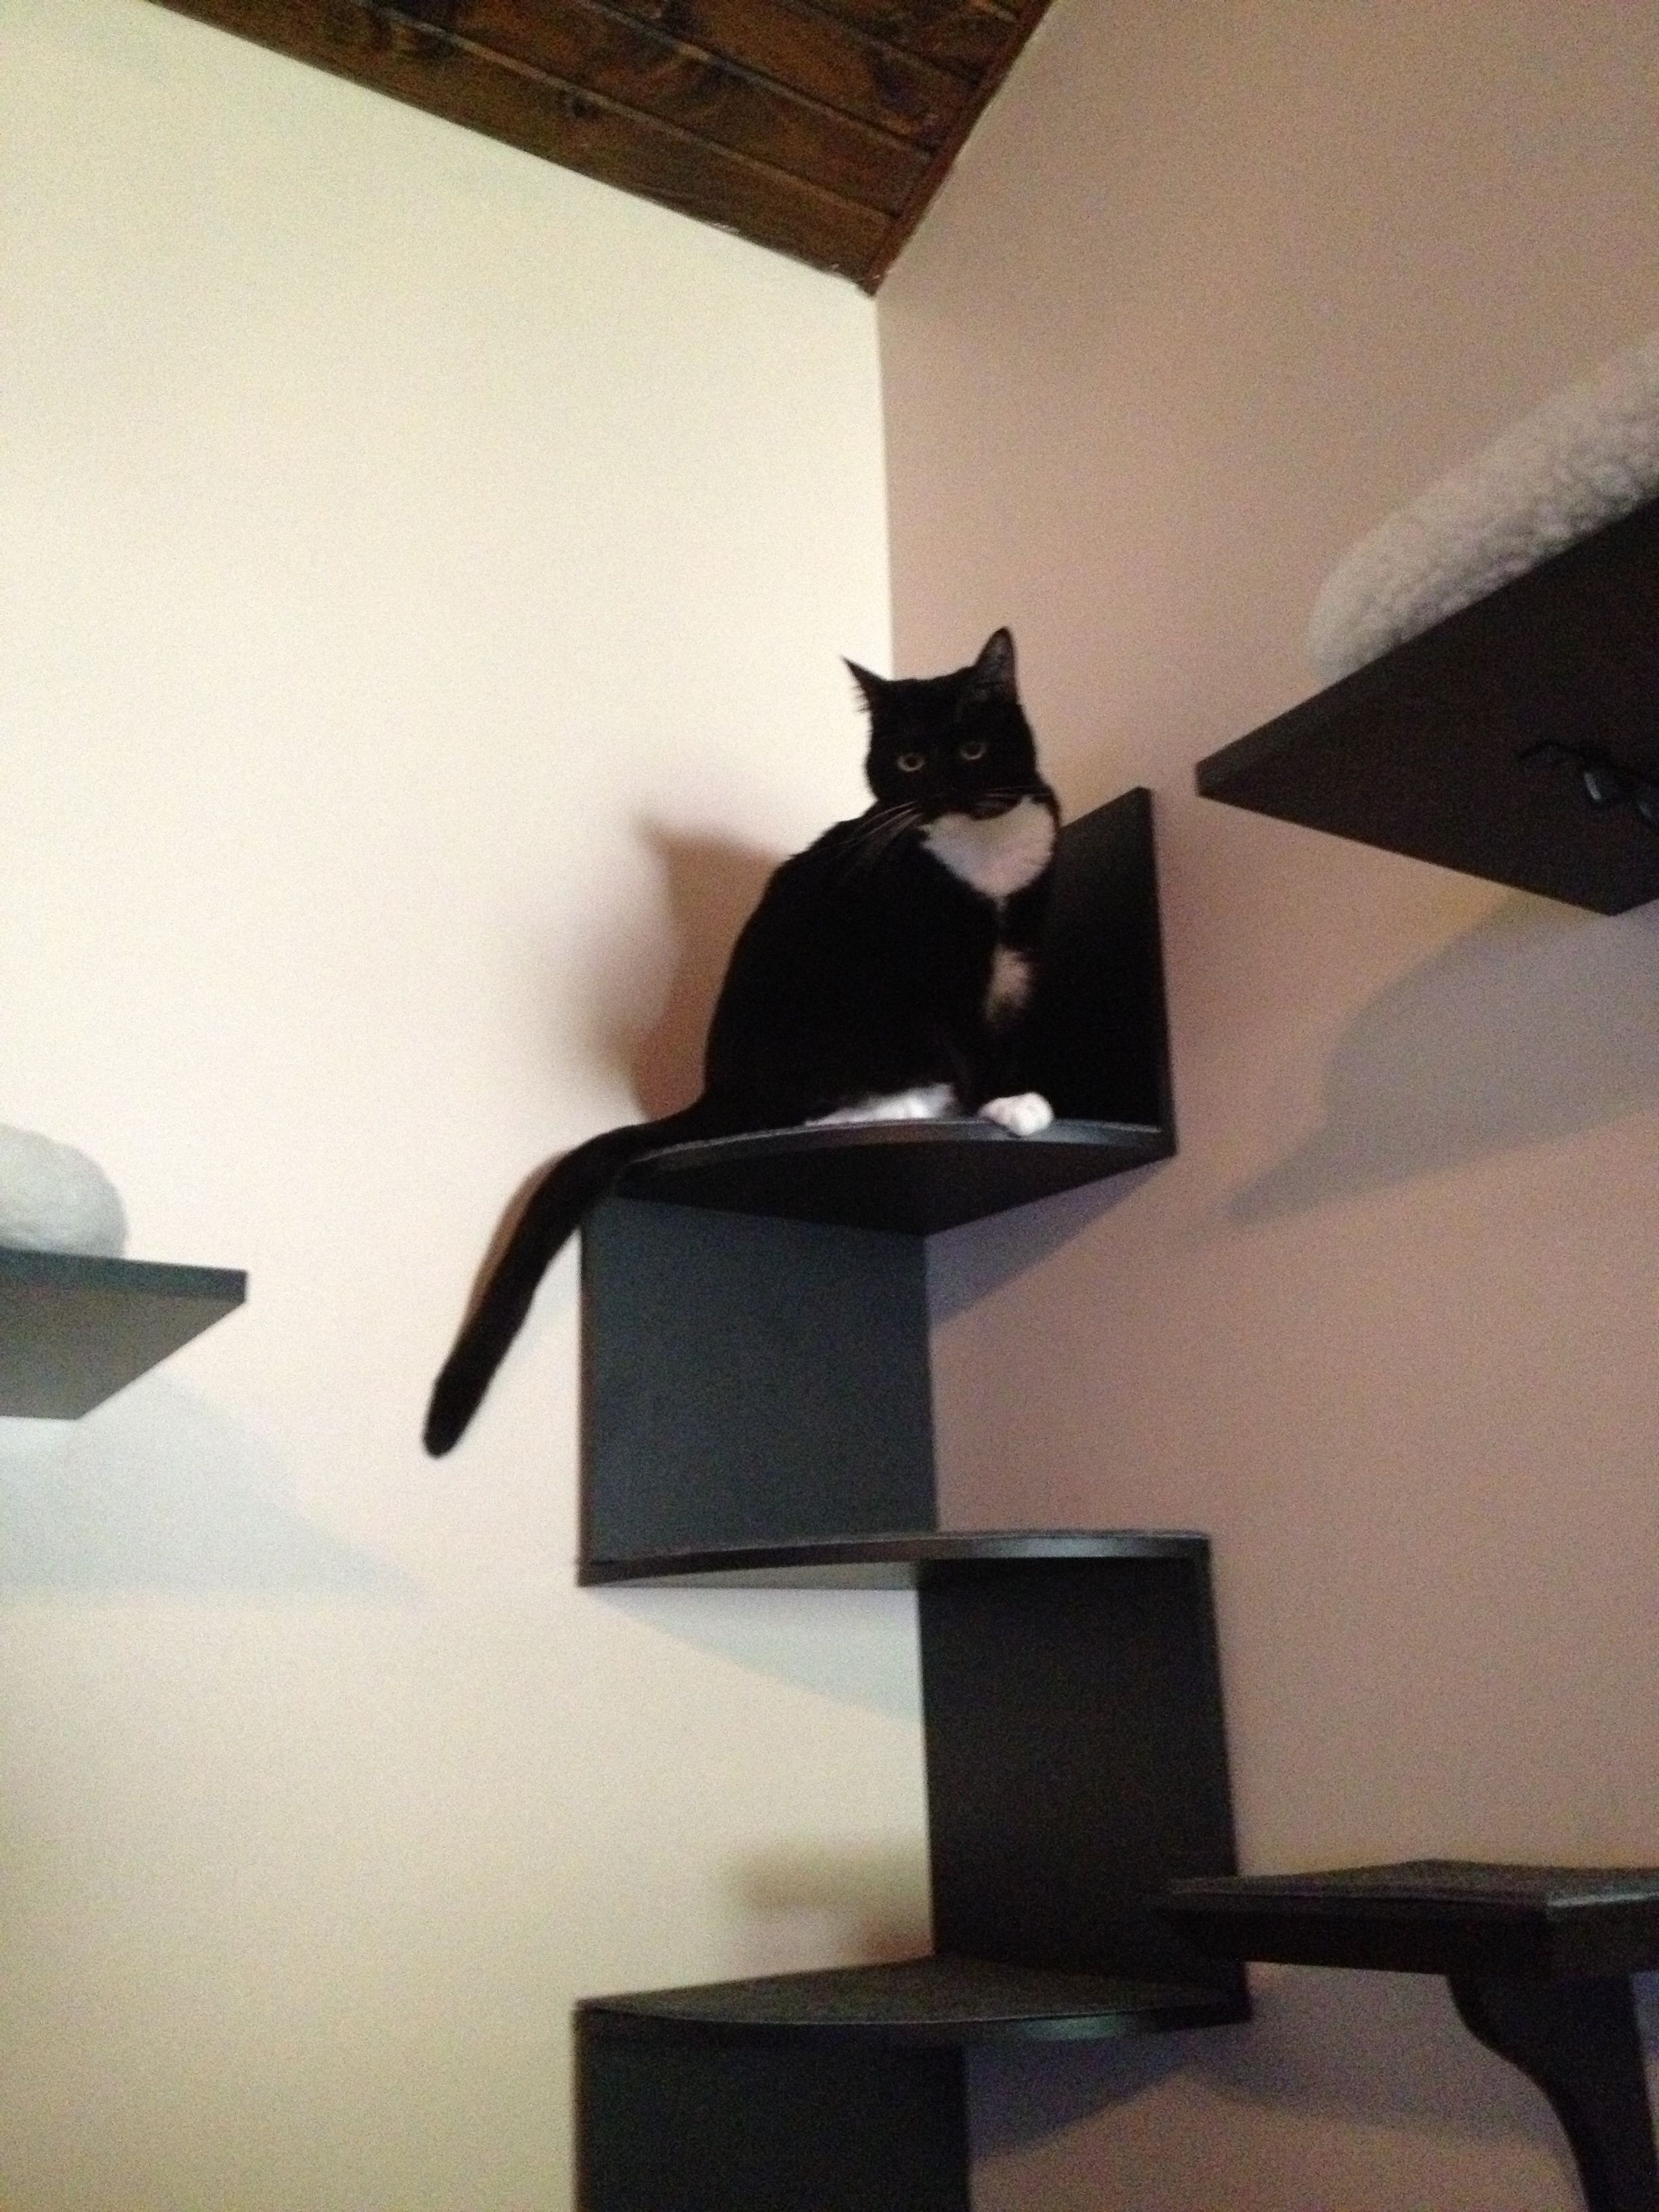 Best ideas about Cat Wall Shelves DIY . Save or Pin DIY cat wall cat shelves cats CatShelves Now.